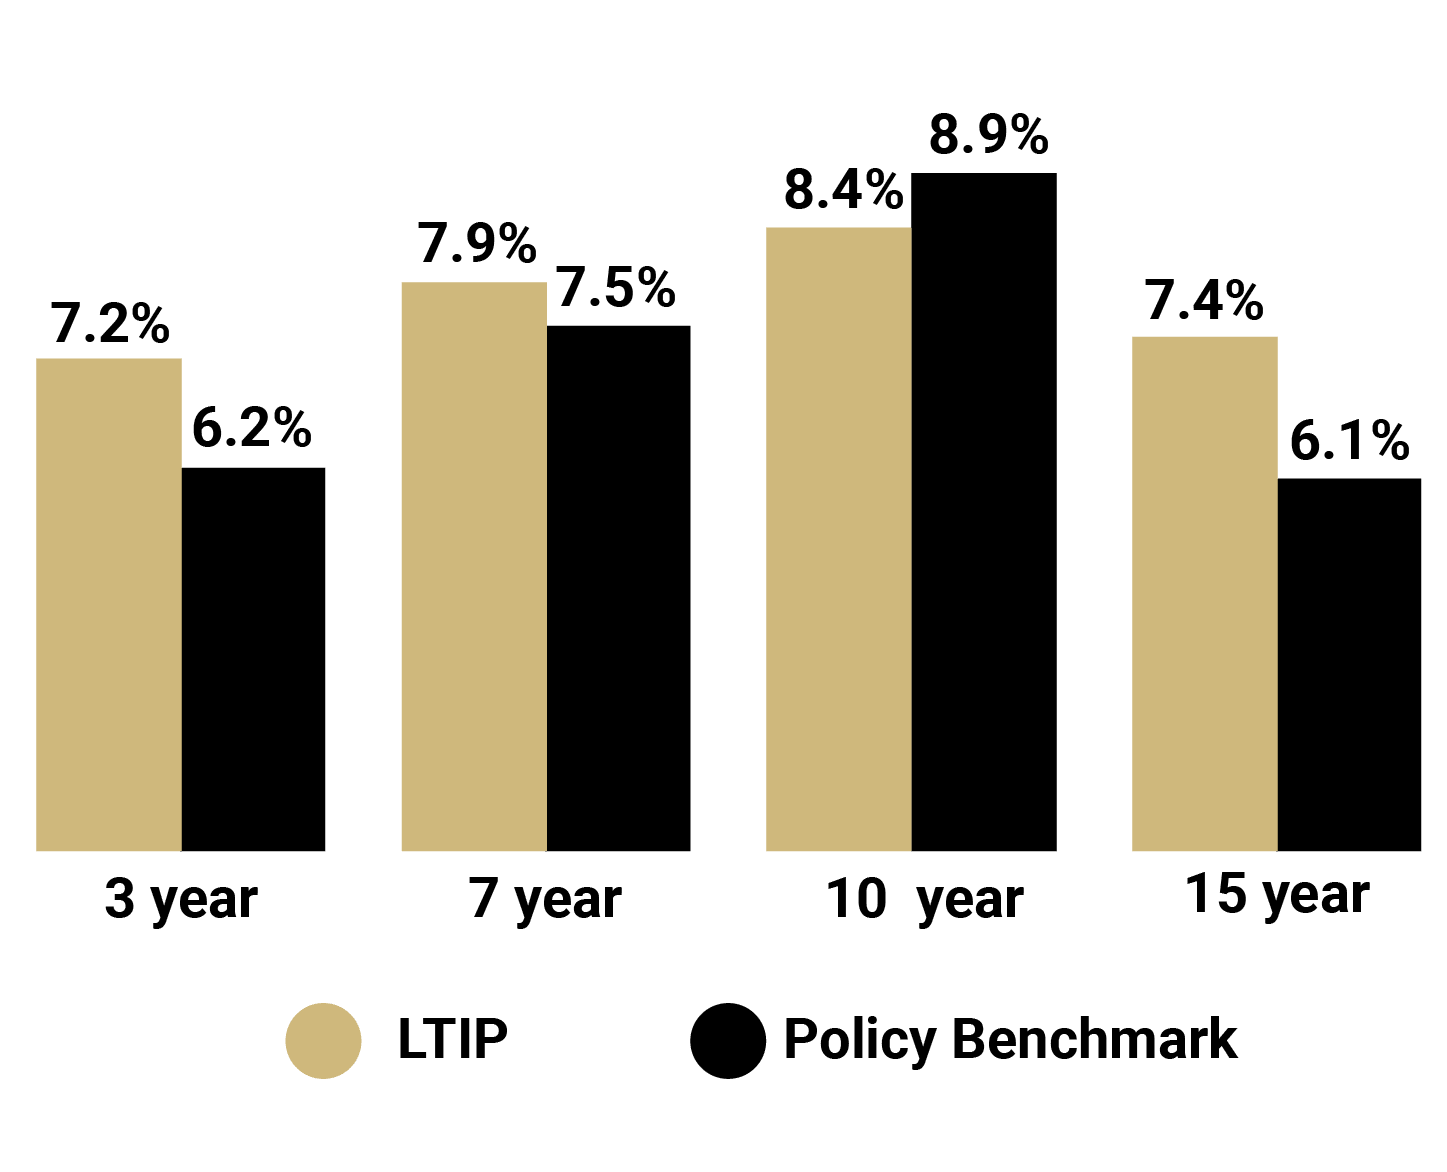 This is a dual bar chat that compares the LTIP and benchmark returns. Here are the percentage returns: 3 year for LTIP is 7.2%, 3 year for benchmark is 6.2%; 5 year for LTIP is 7.9%, 5 year for benchmark is 7.5%; 10 year for LTIP is 8.4%, 10 year for benchmark is 8.9%; 15 year for LTIP is 7.4%, 15 year for benchmark is 6.1%.